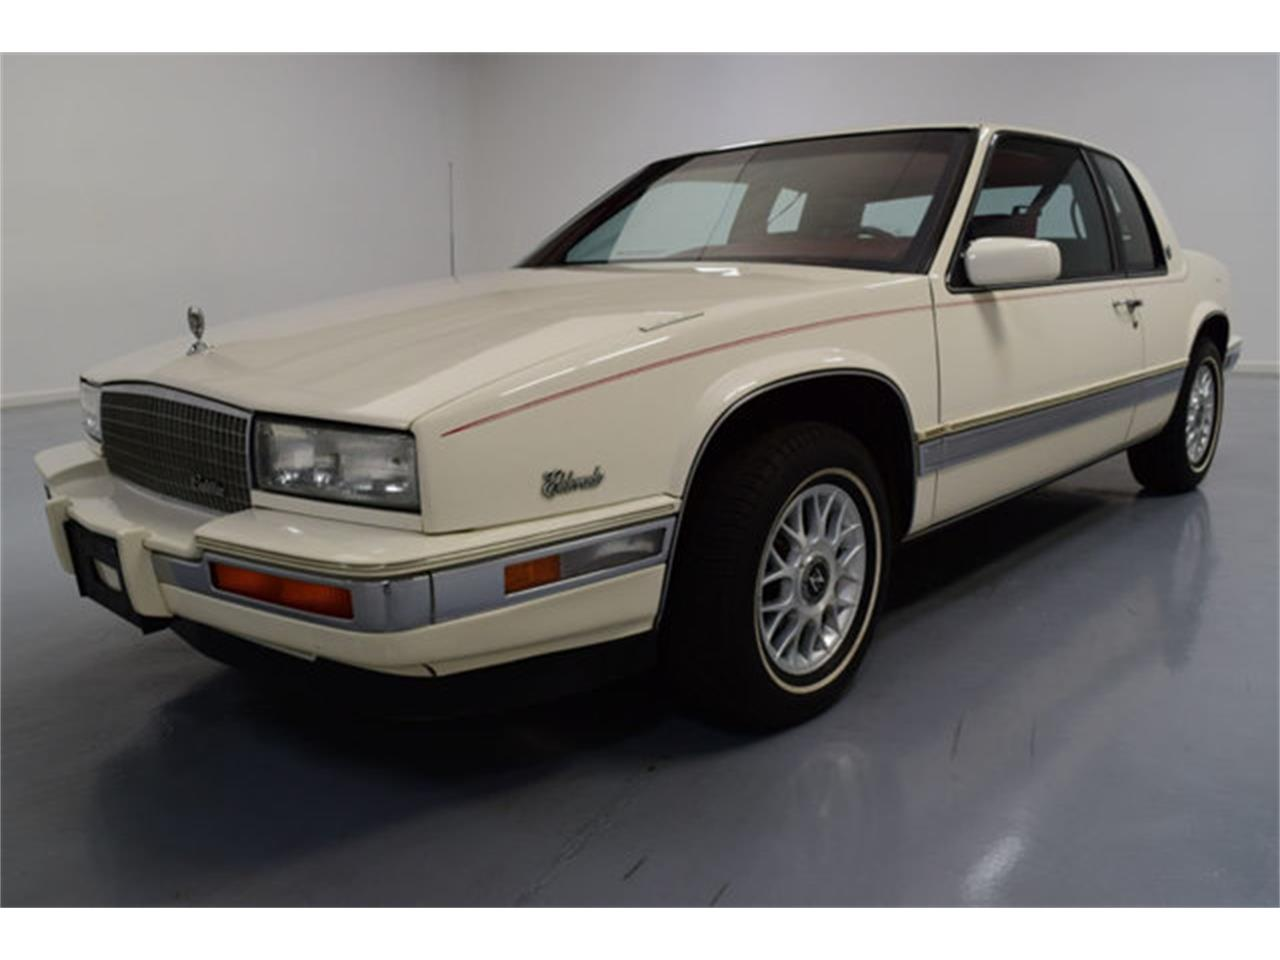 1986 cadillac eldorado for sale classiccars com cc 896539 1986 cadillac eldorado for sale